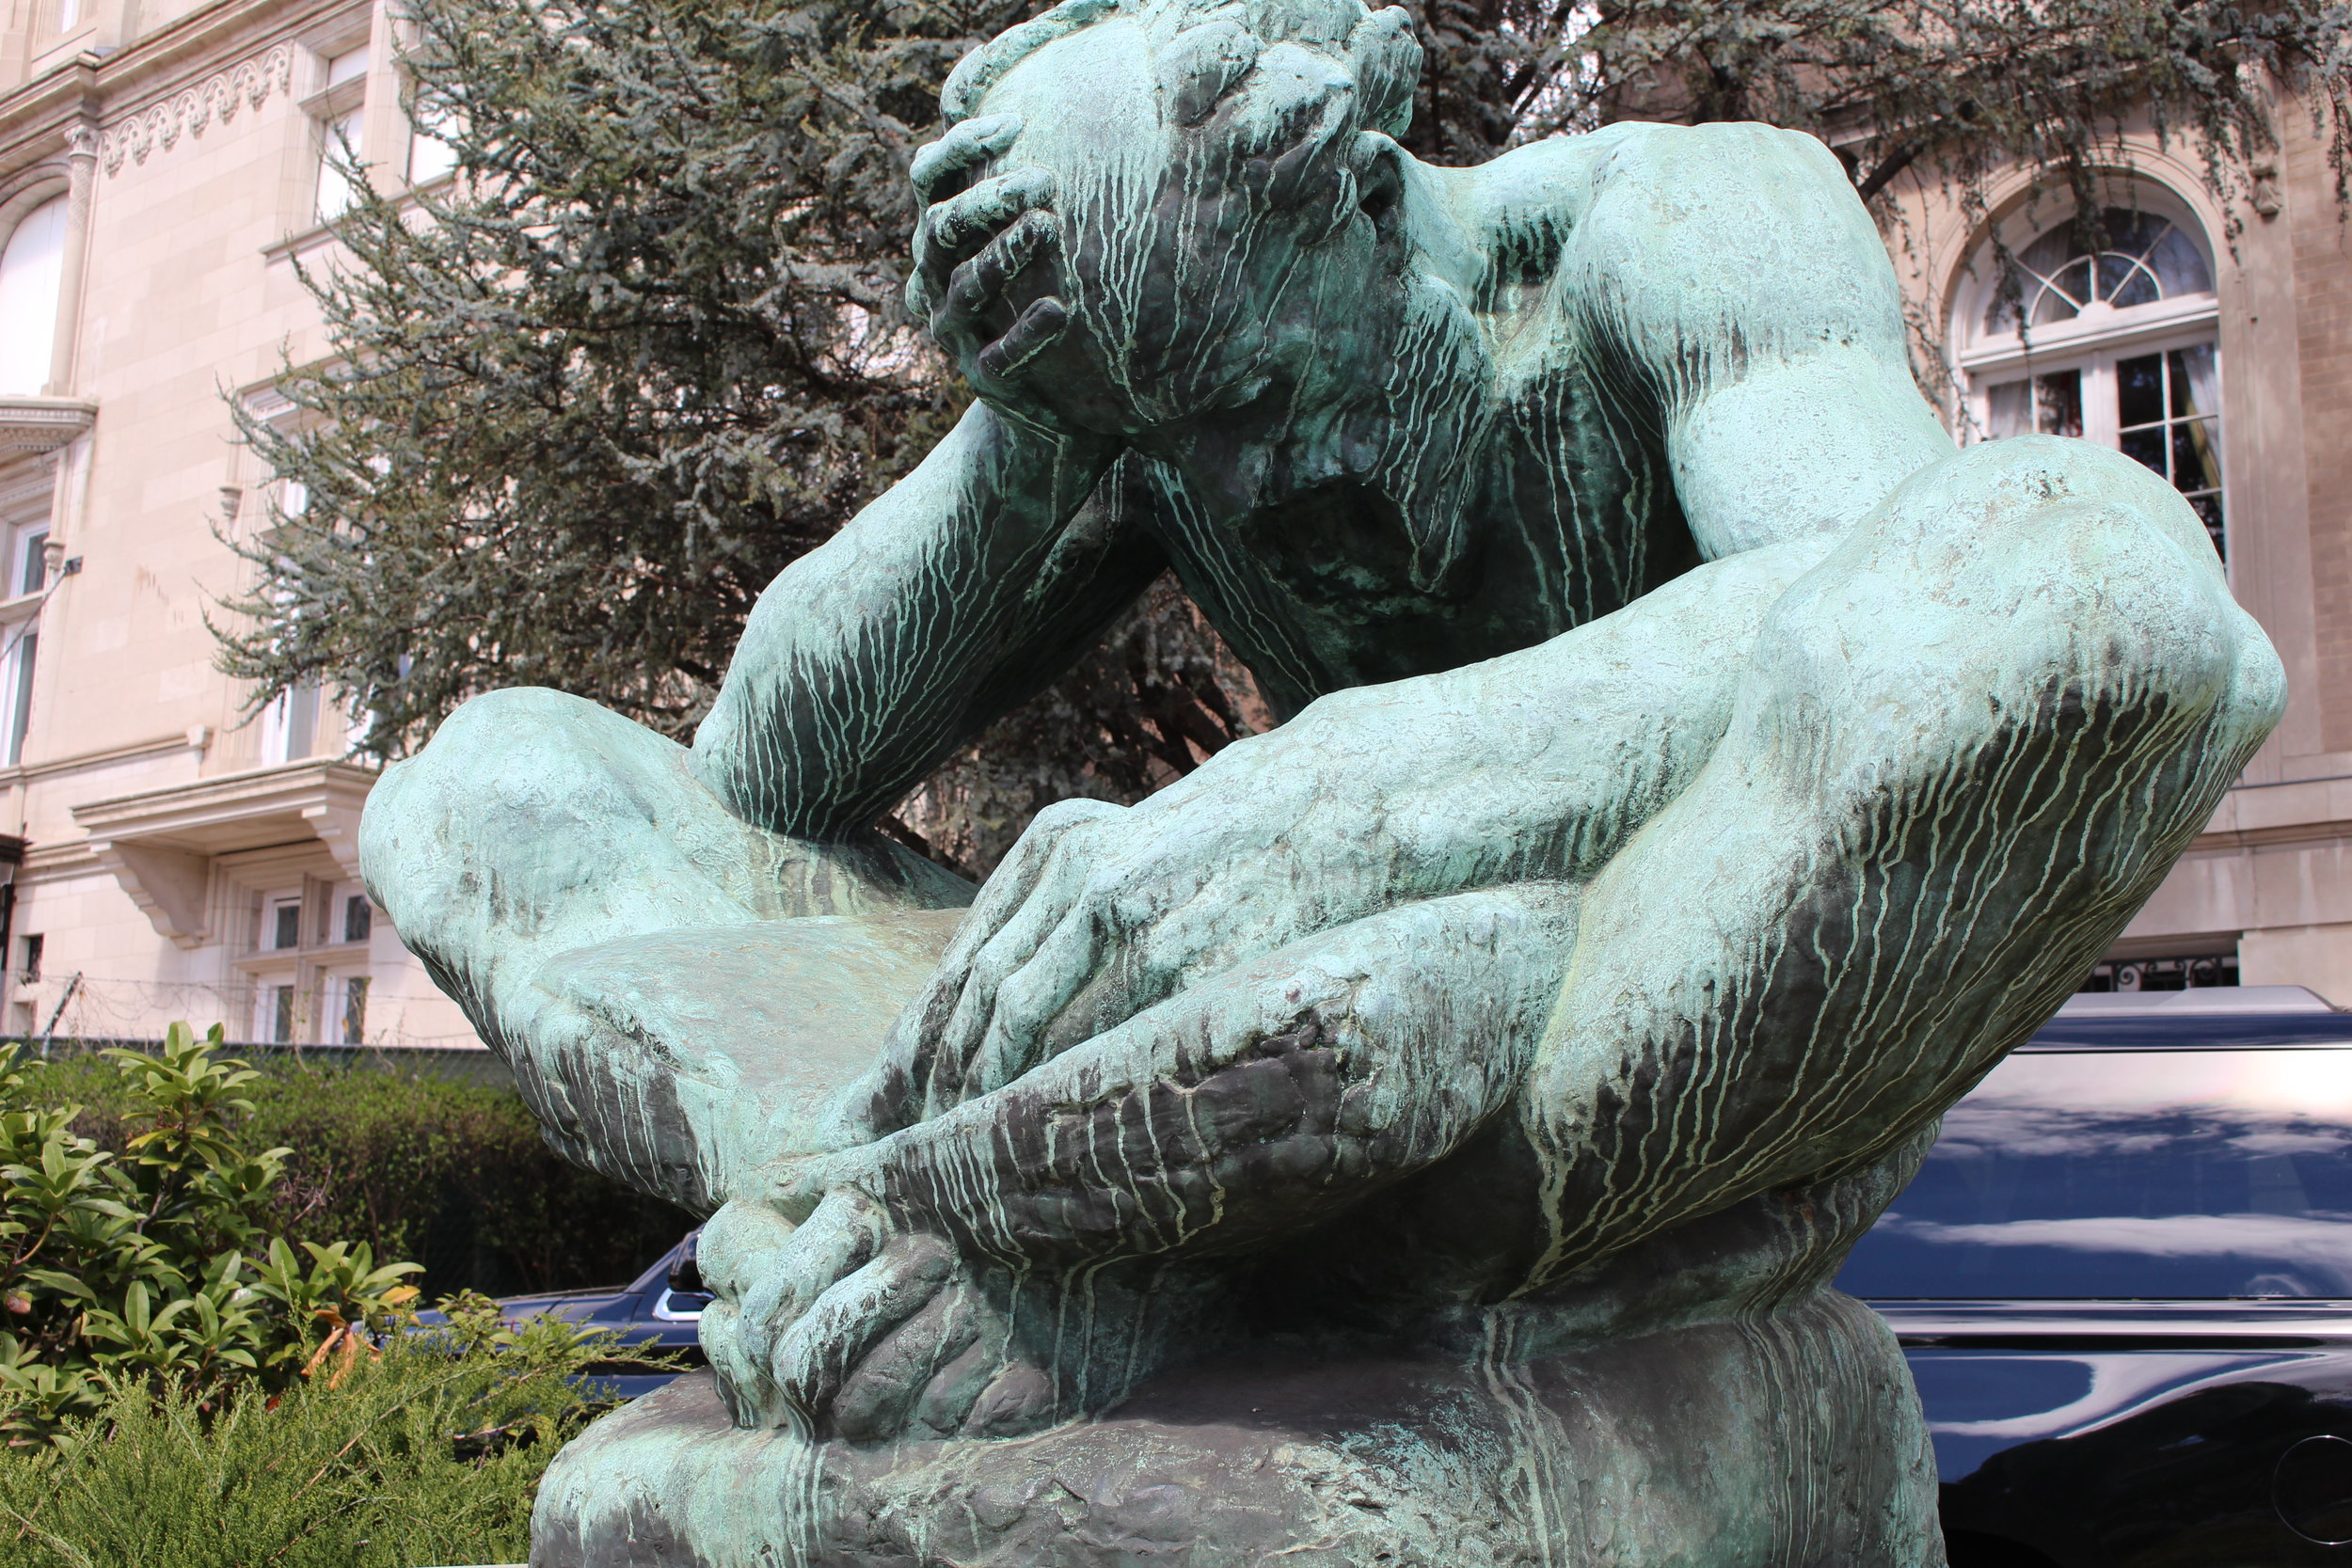 Sculpture of man reading a book with head in hand